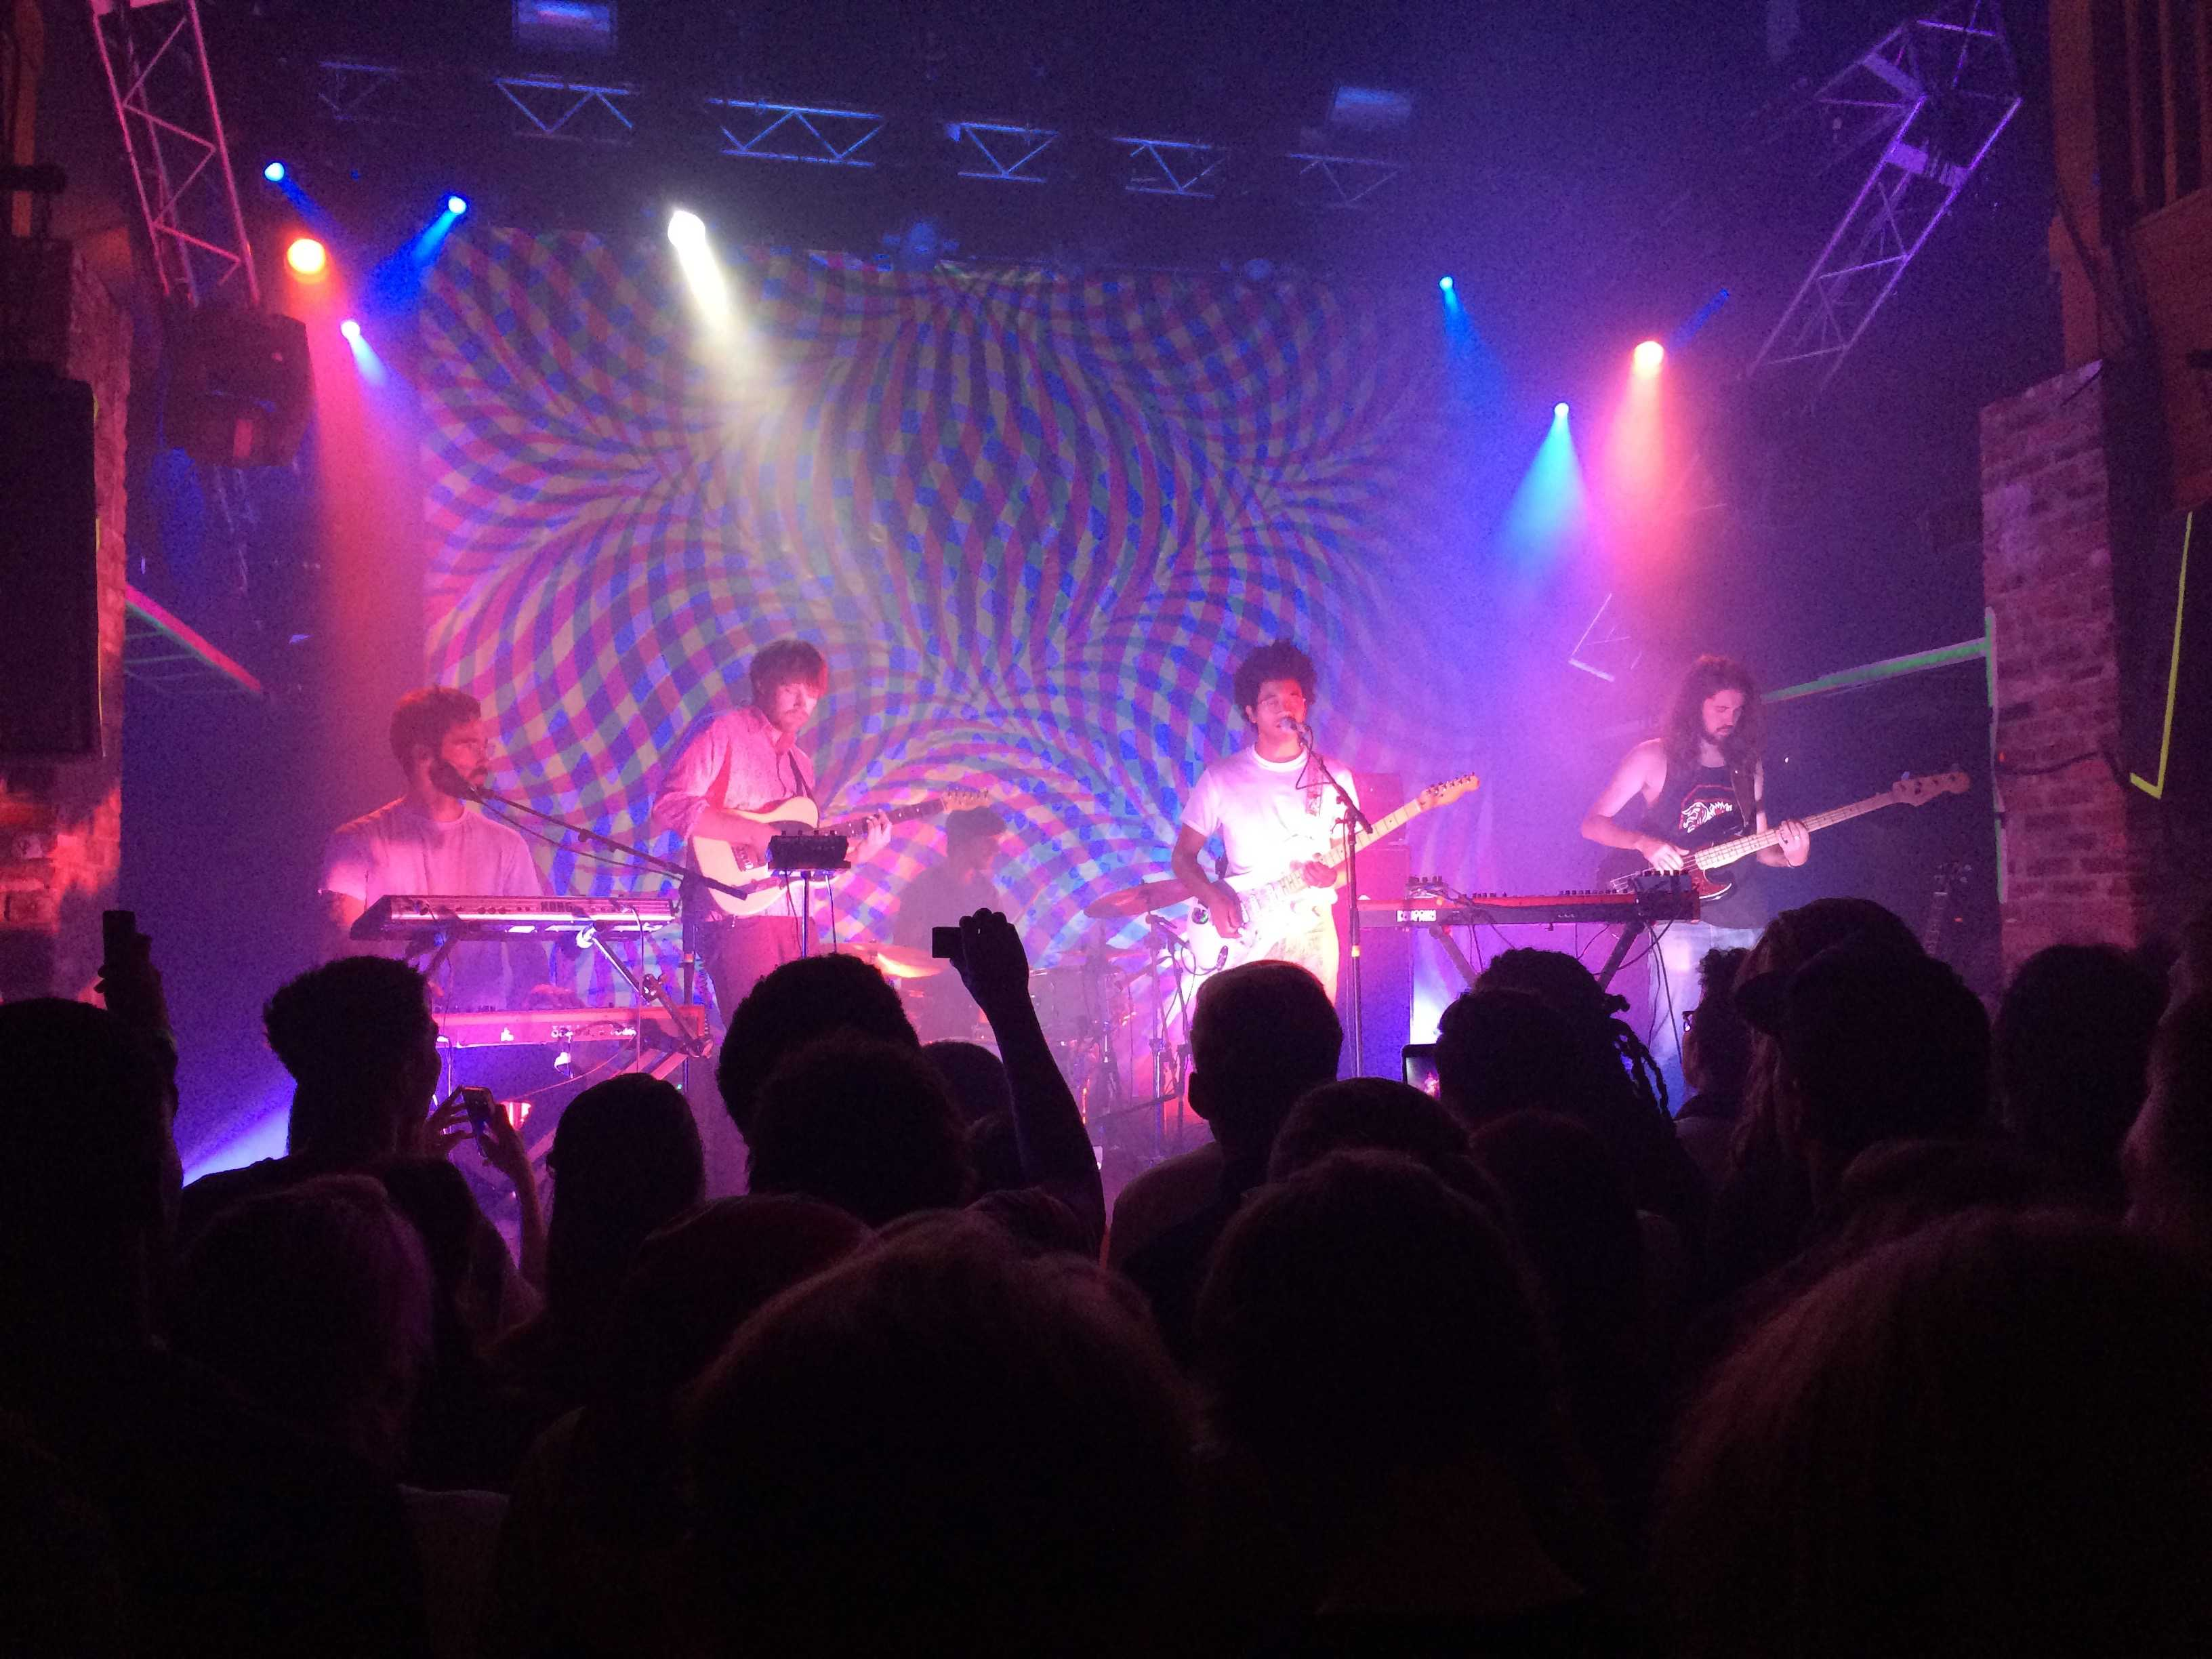 Toro y Moi sets the groove for an interstellar disco at Freebird Live